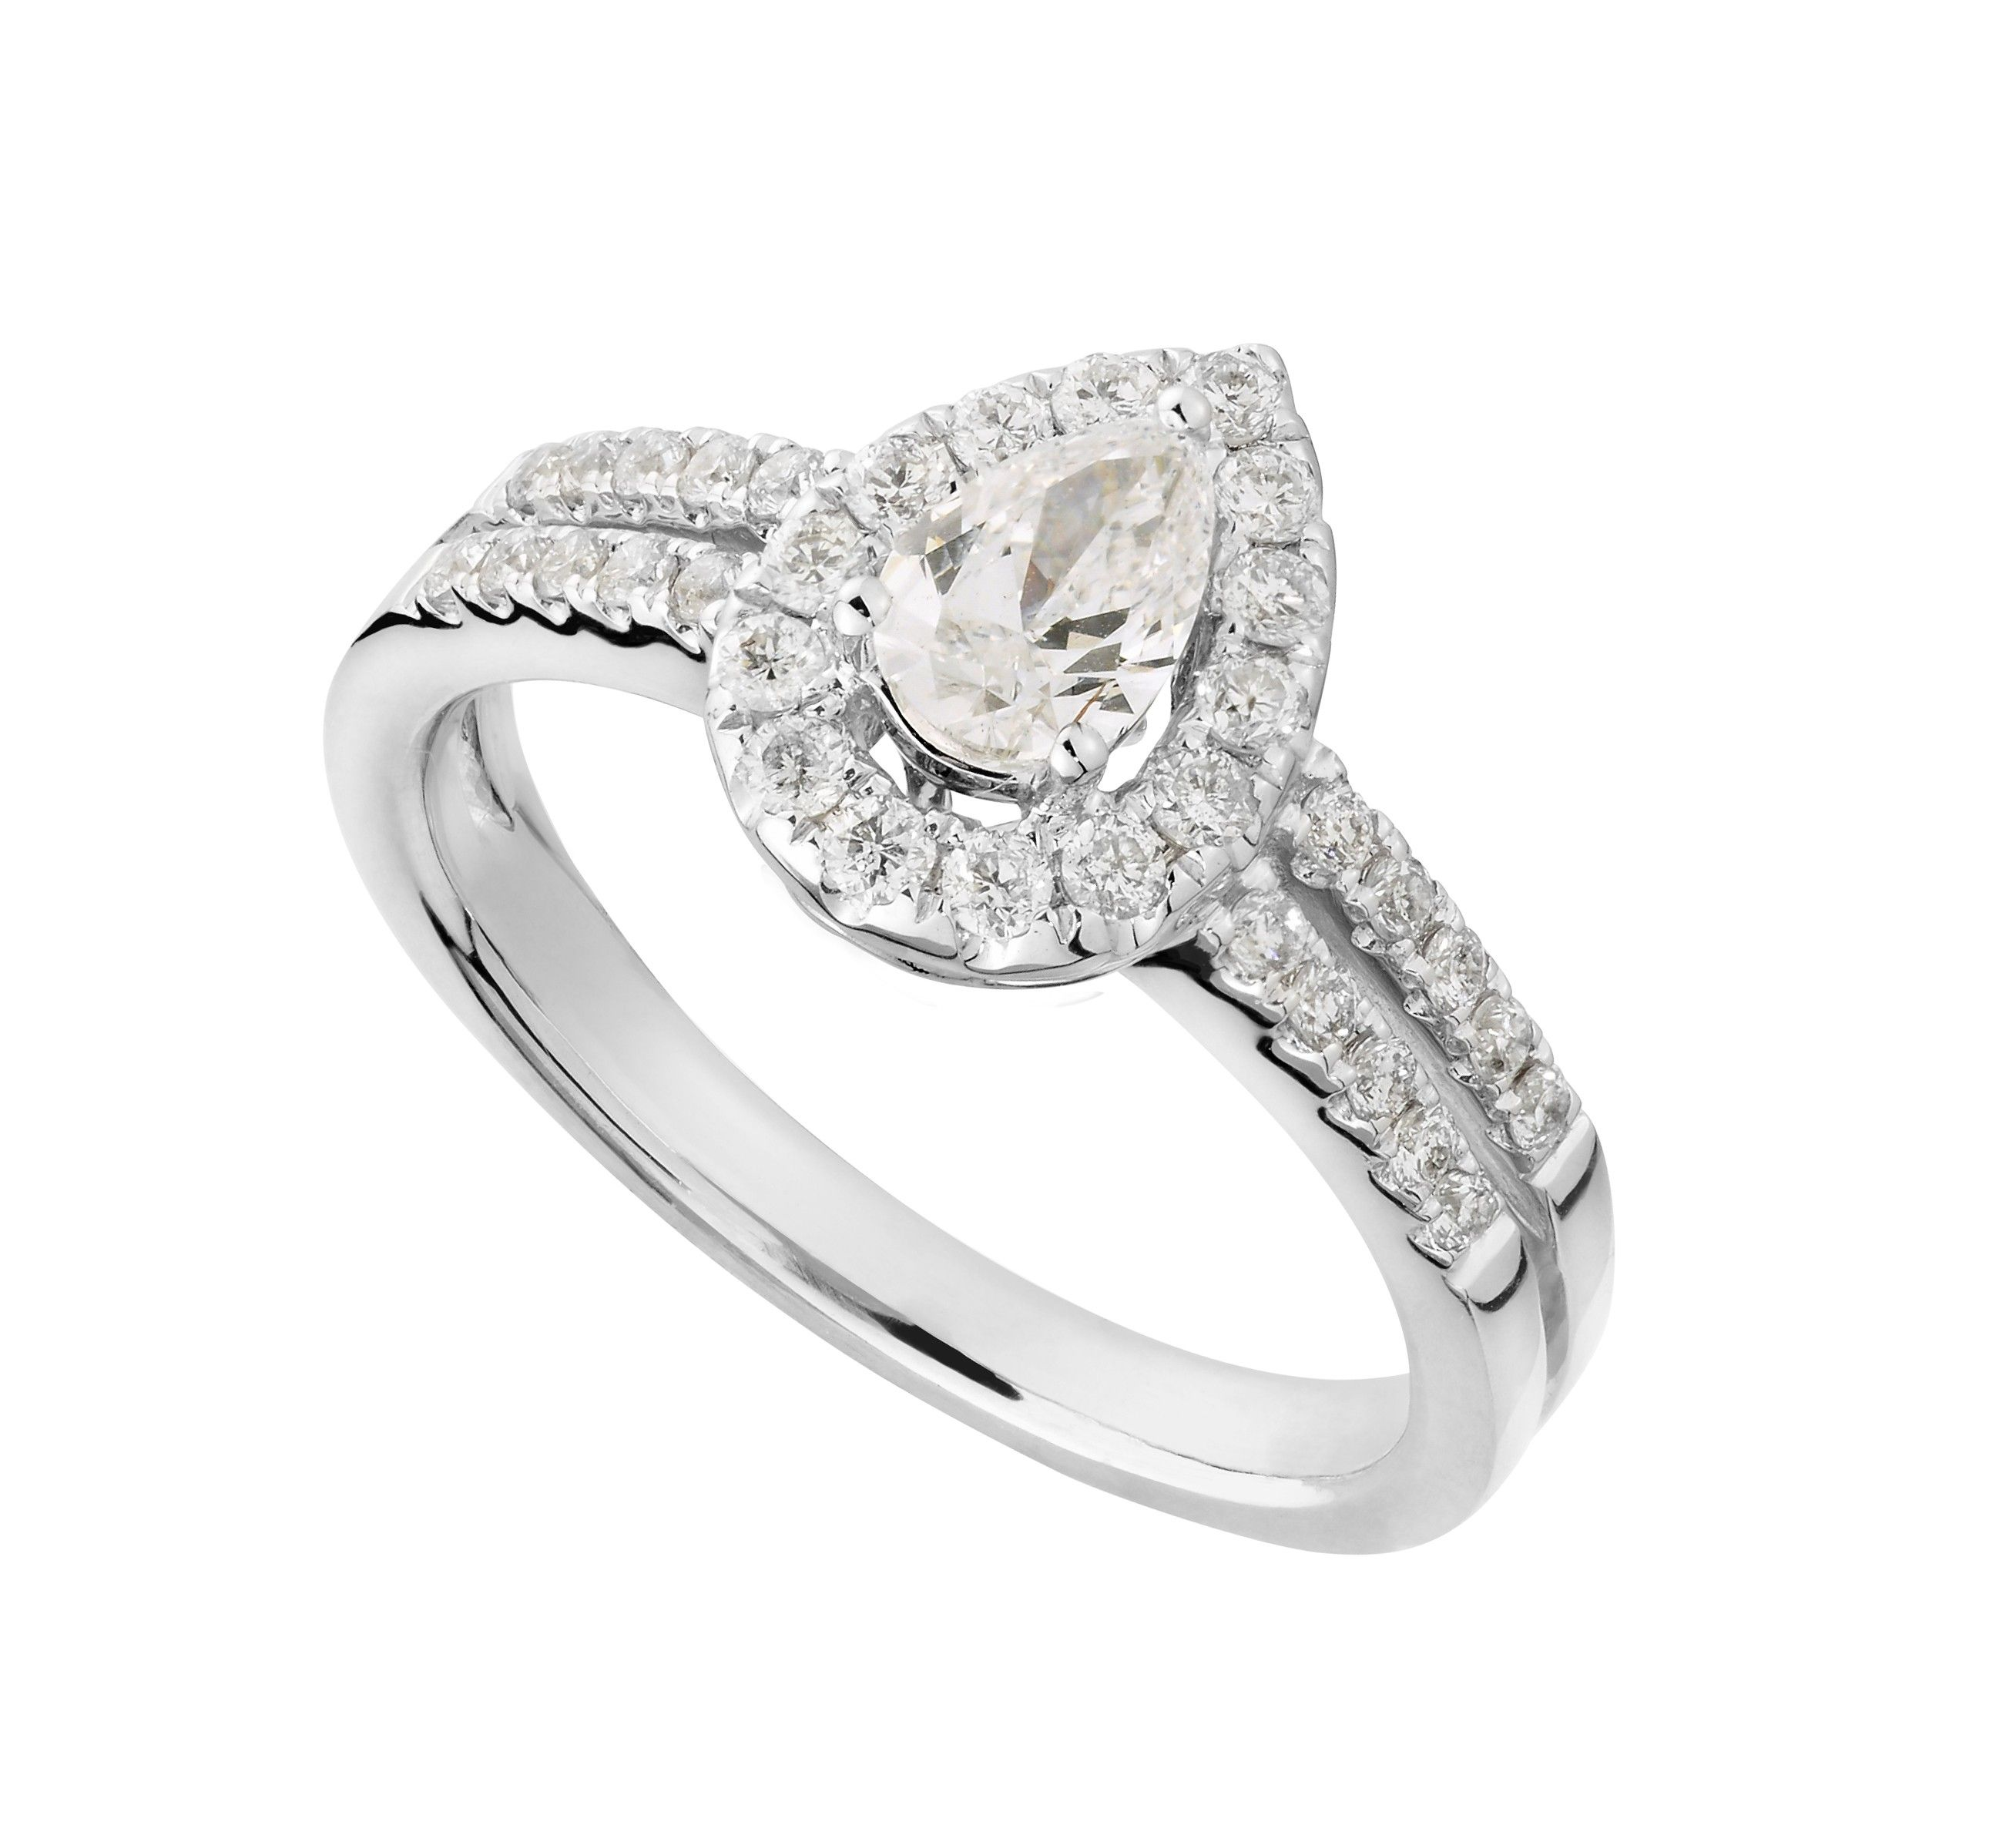 18ct White Gold 080 Carat Pear Cut Diamond Ring